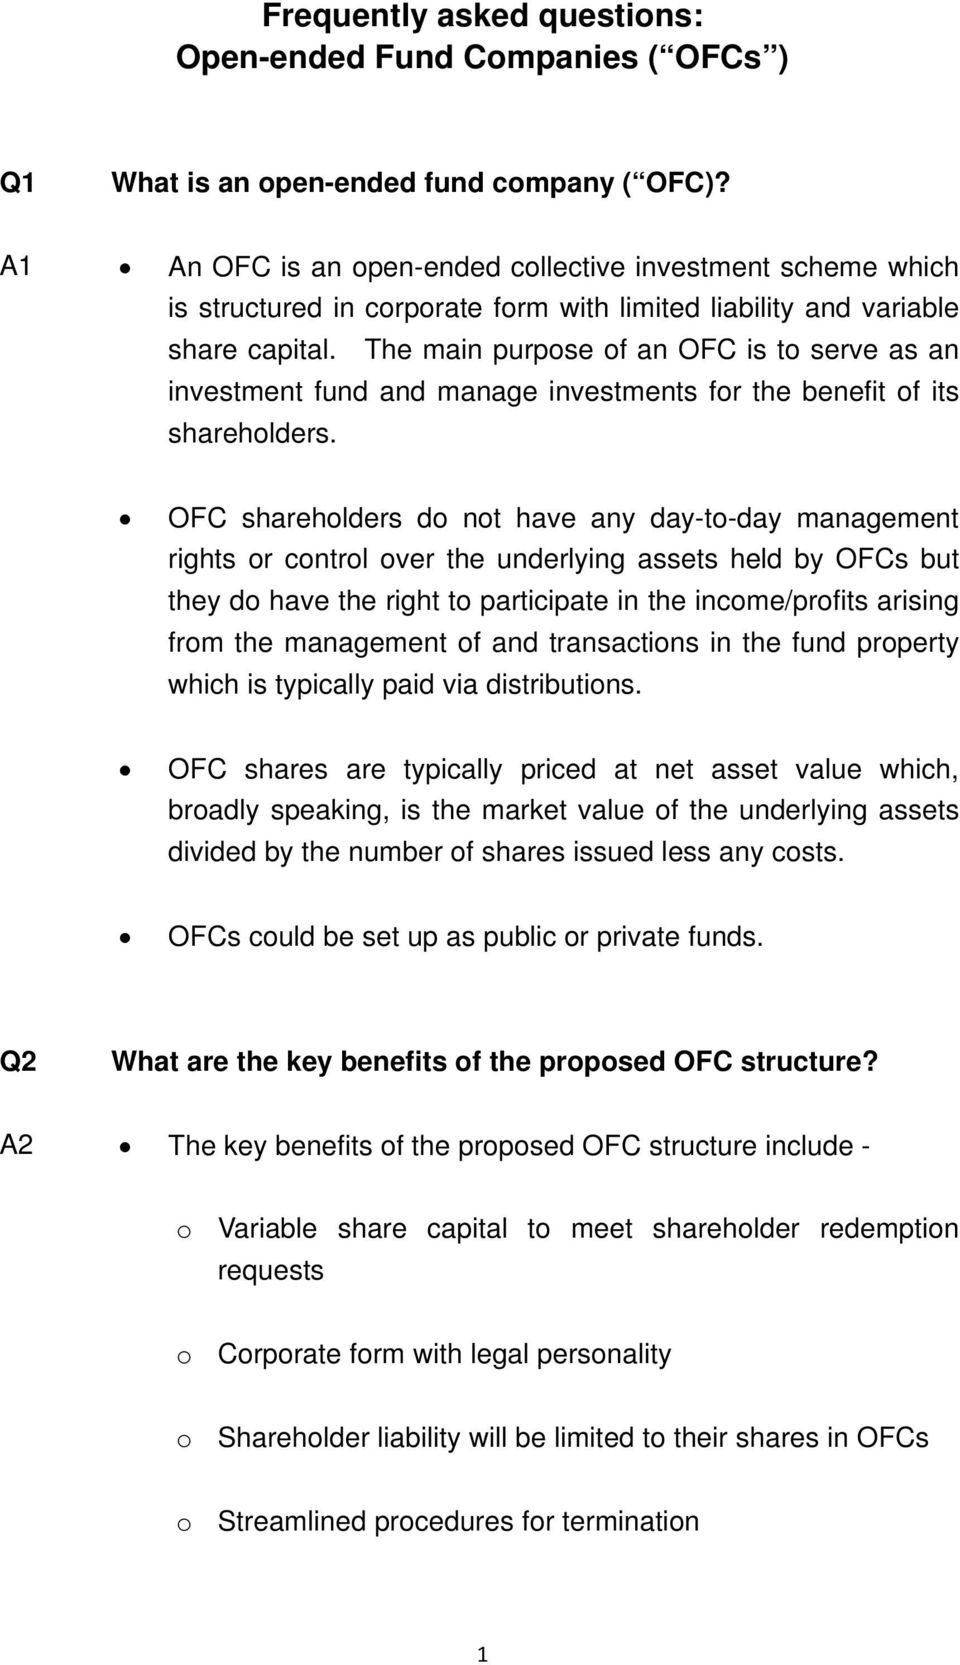 The main purpose of an OFC is to serve as an investment fund and manage investments for the benefit of its shareholders.